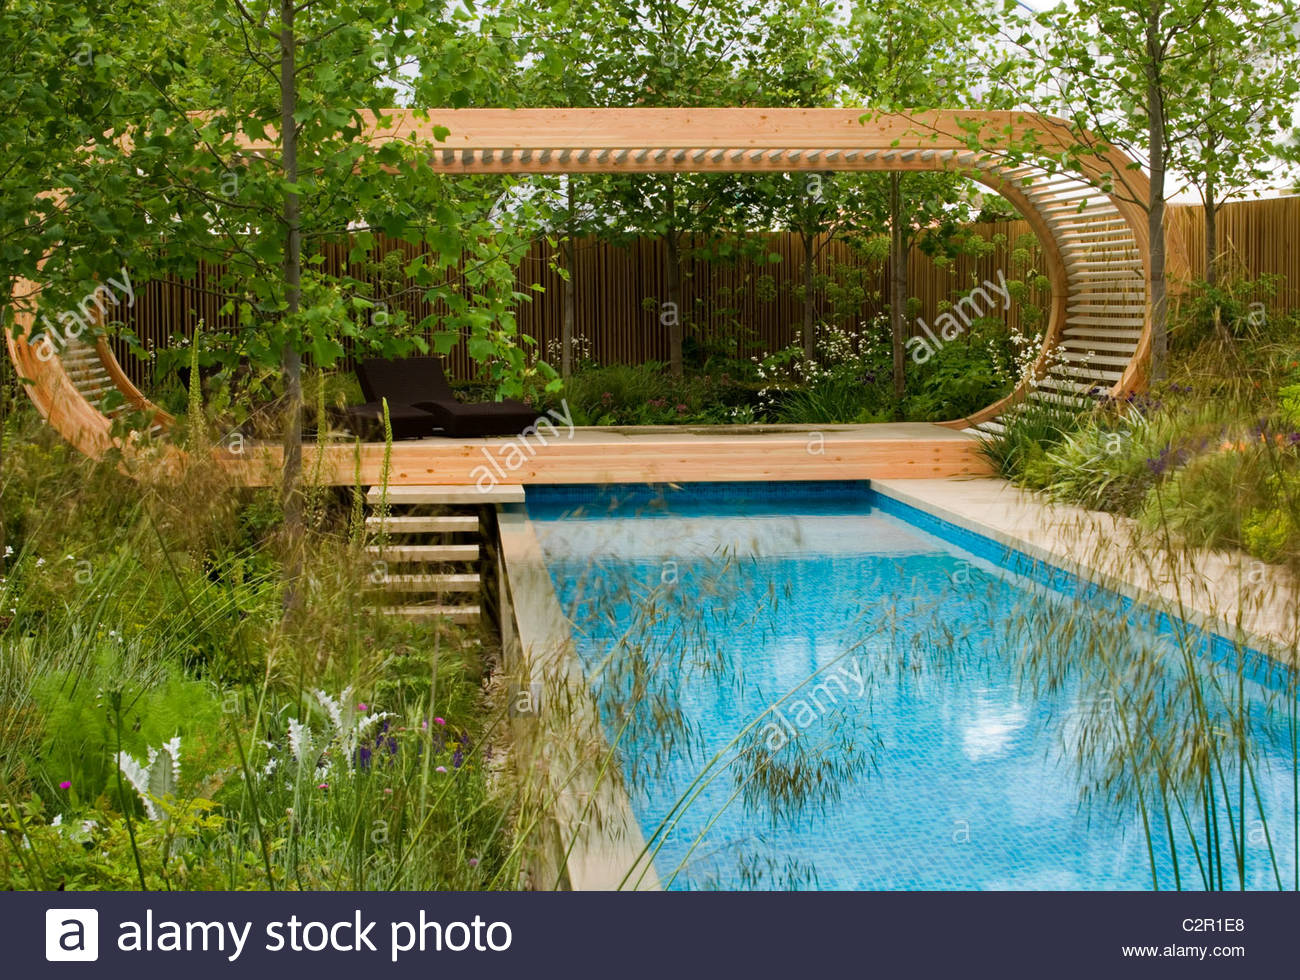 Chelsea Flower Show 2006: Cancer Research garden, Designer: andy ...